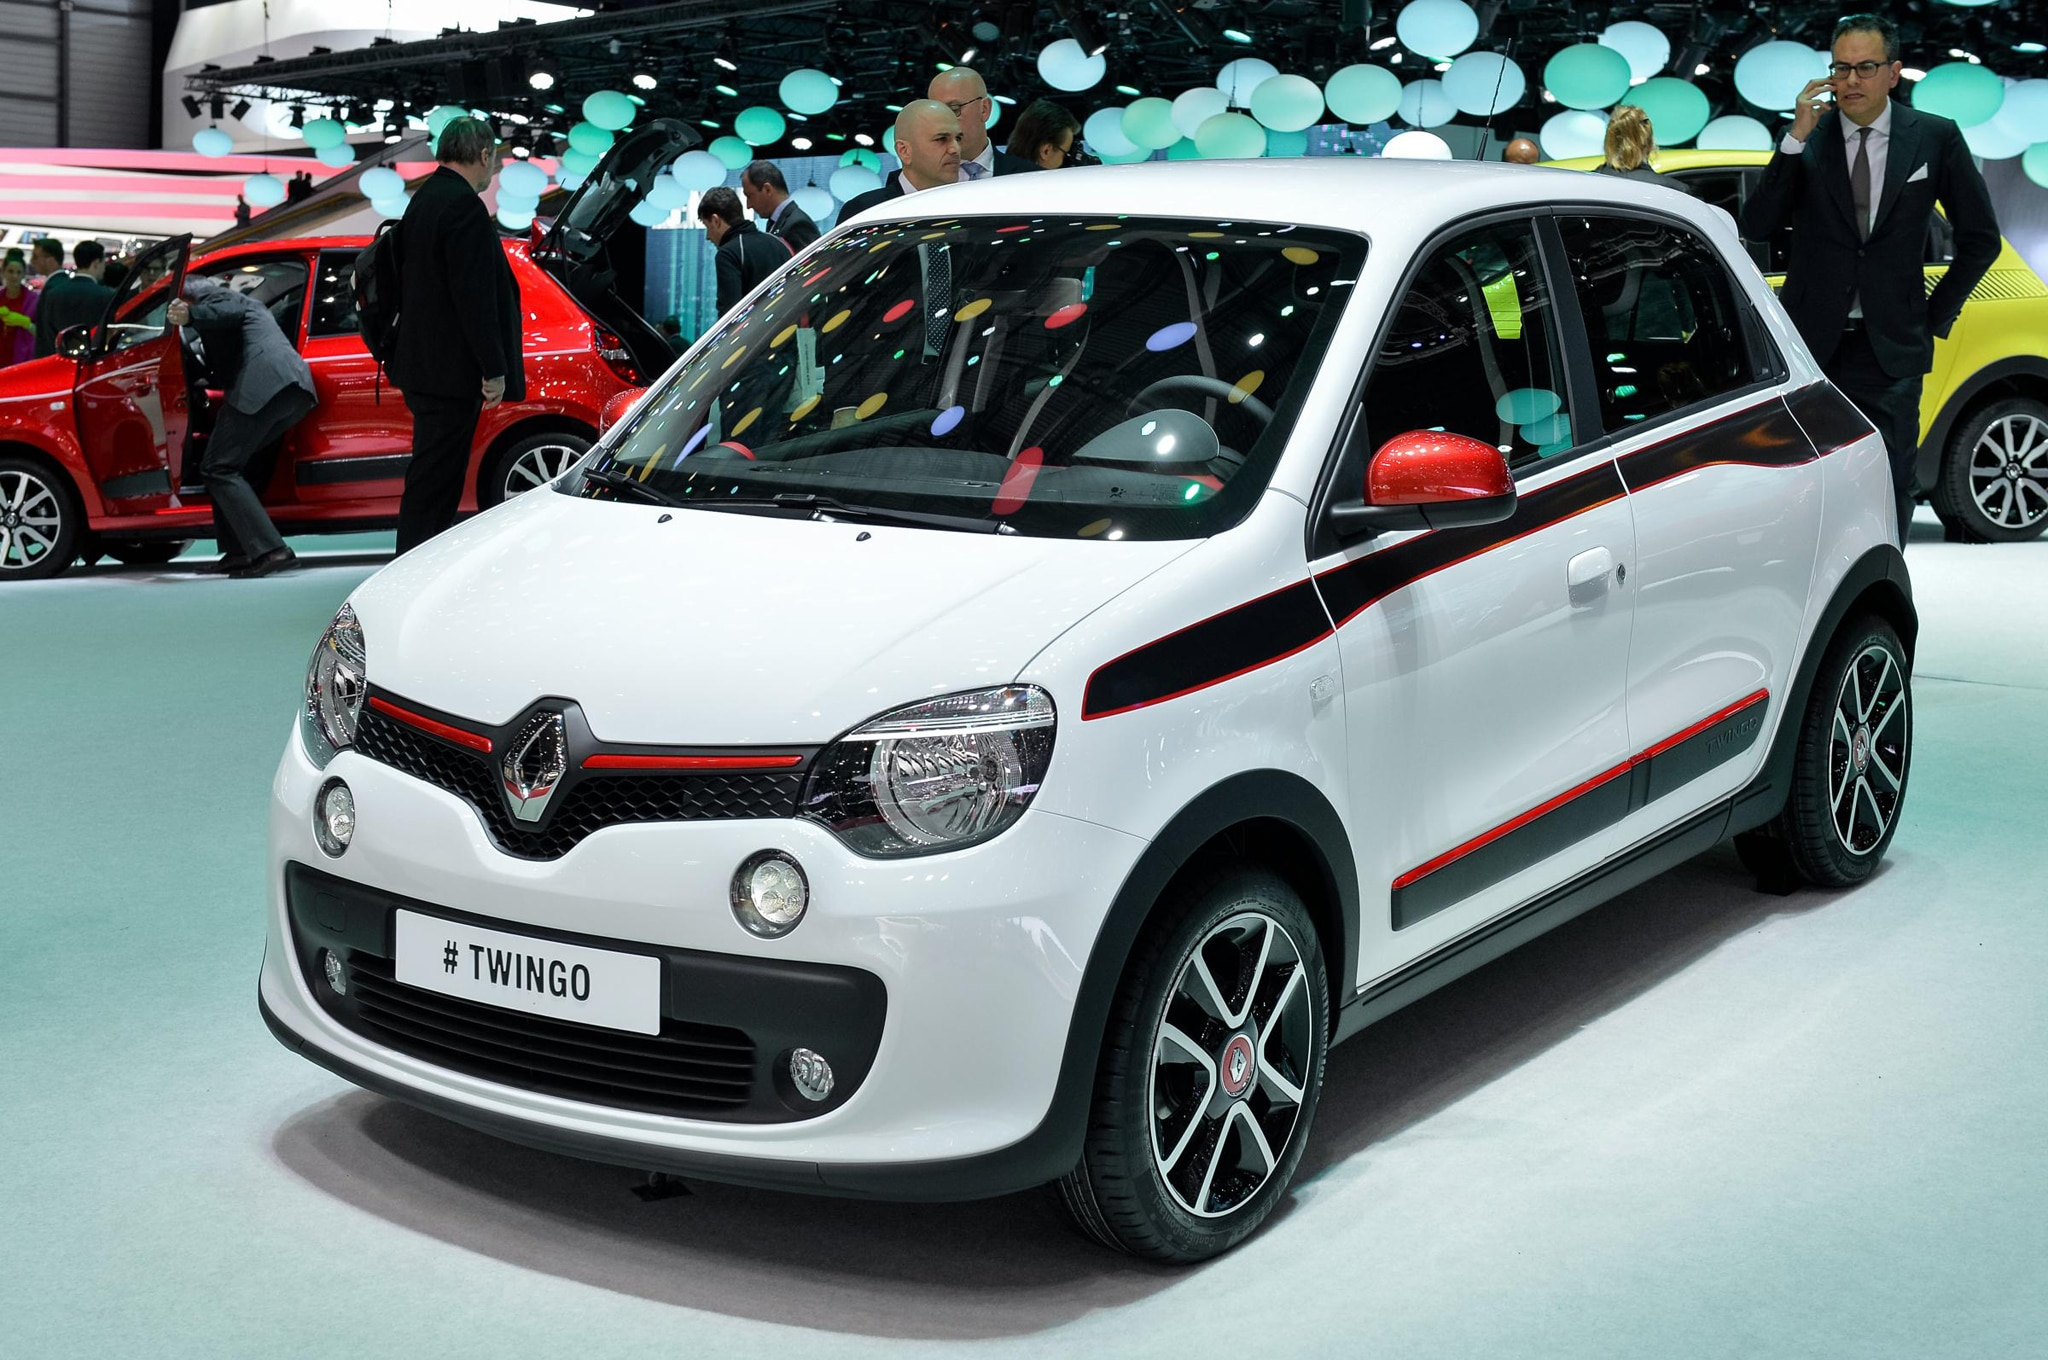 new smart based renault twingo debuts in geneva automobile magazine. Black Bedroom Furniture Sets. Home Design Ideas